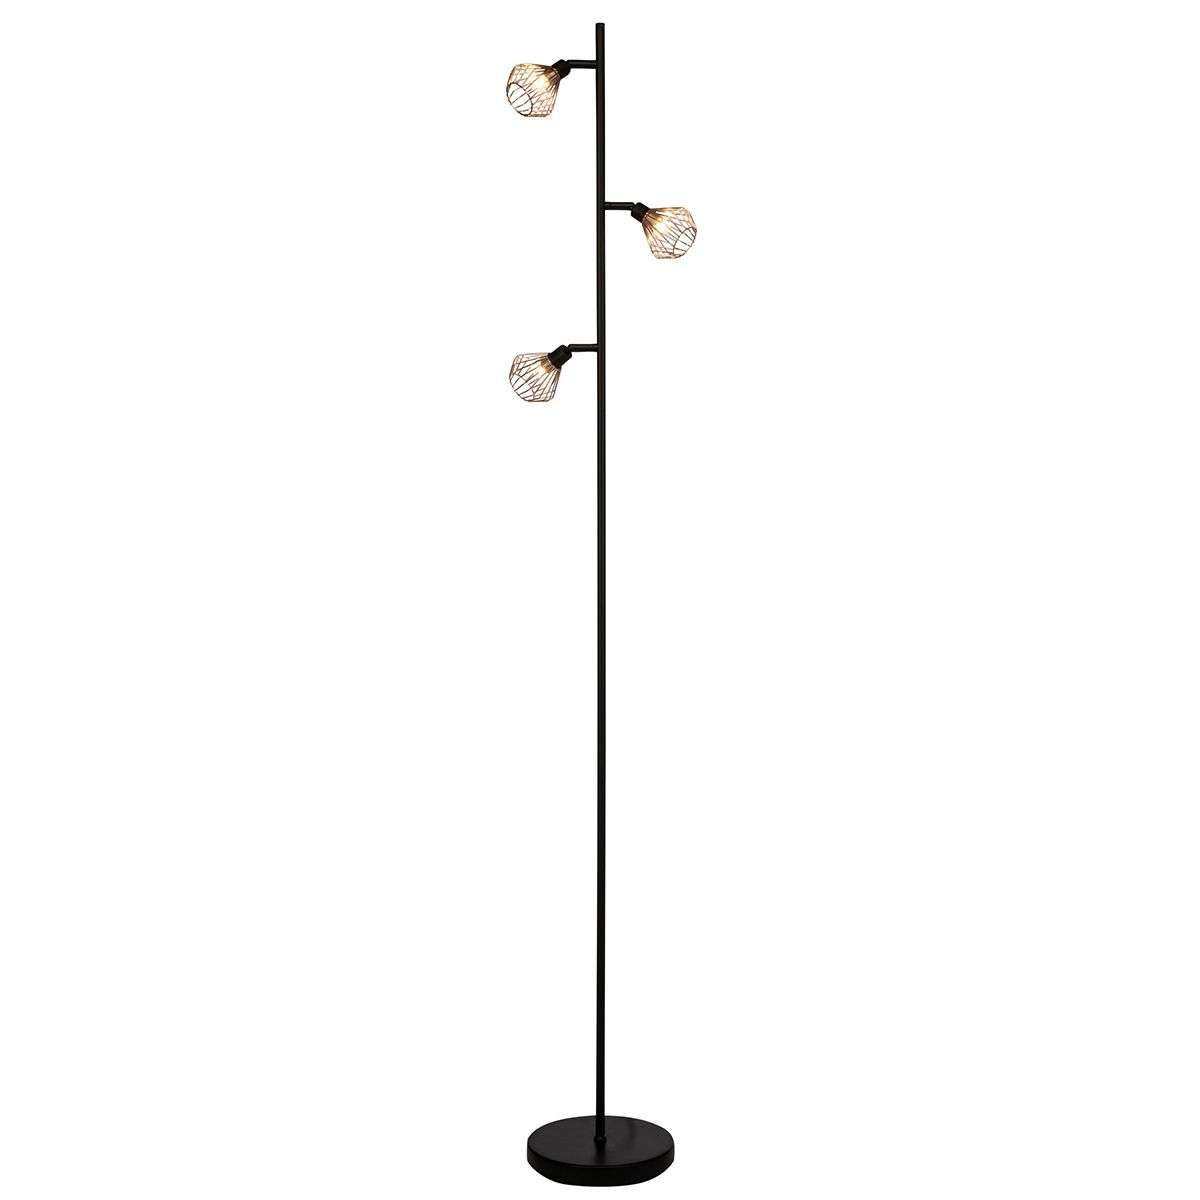 Dalma a floor lamp with 3 wire lampshades lights dalma a floor lamp with 3 wire lampshades 1509153 31 arubaitofo Choice Image